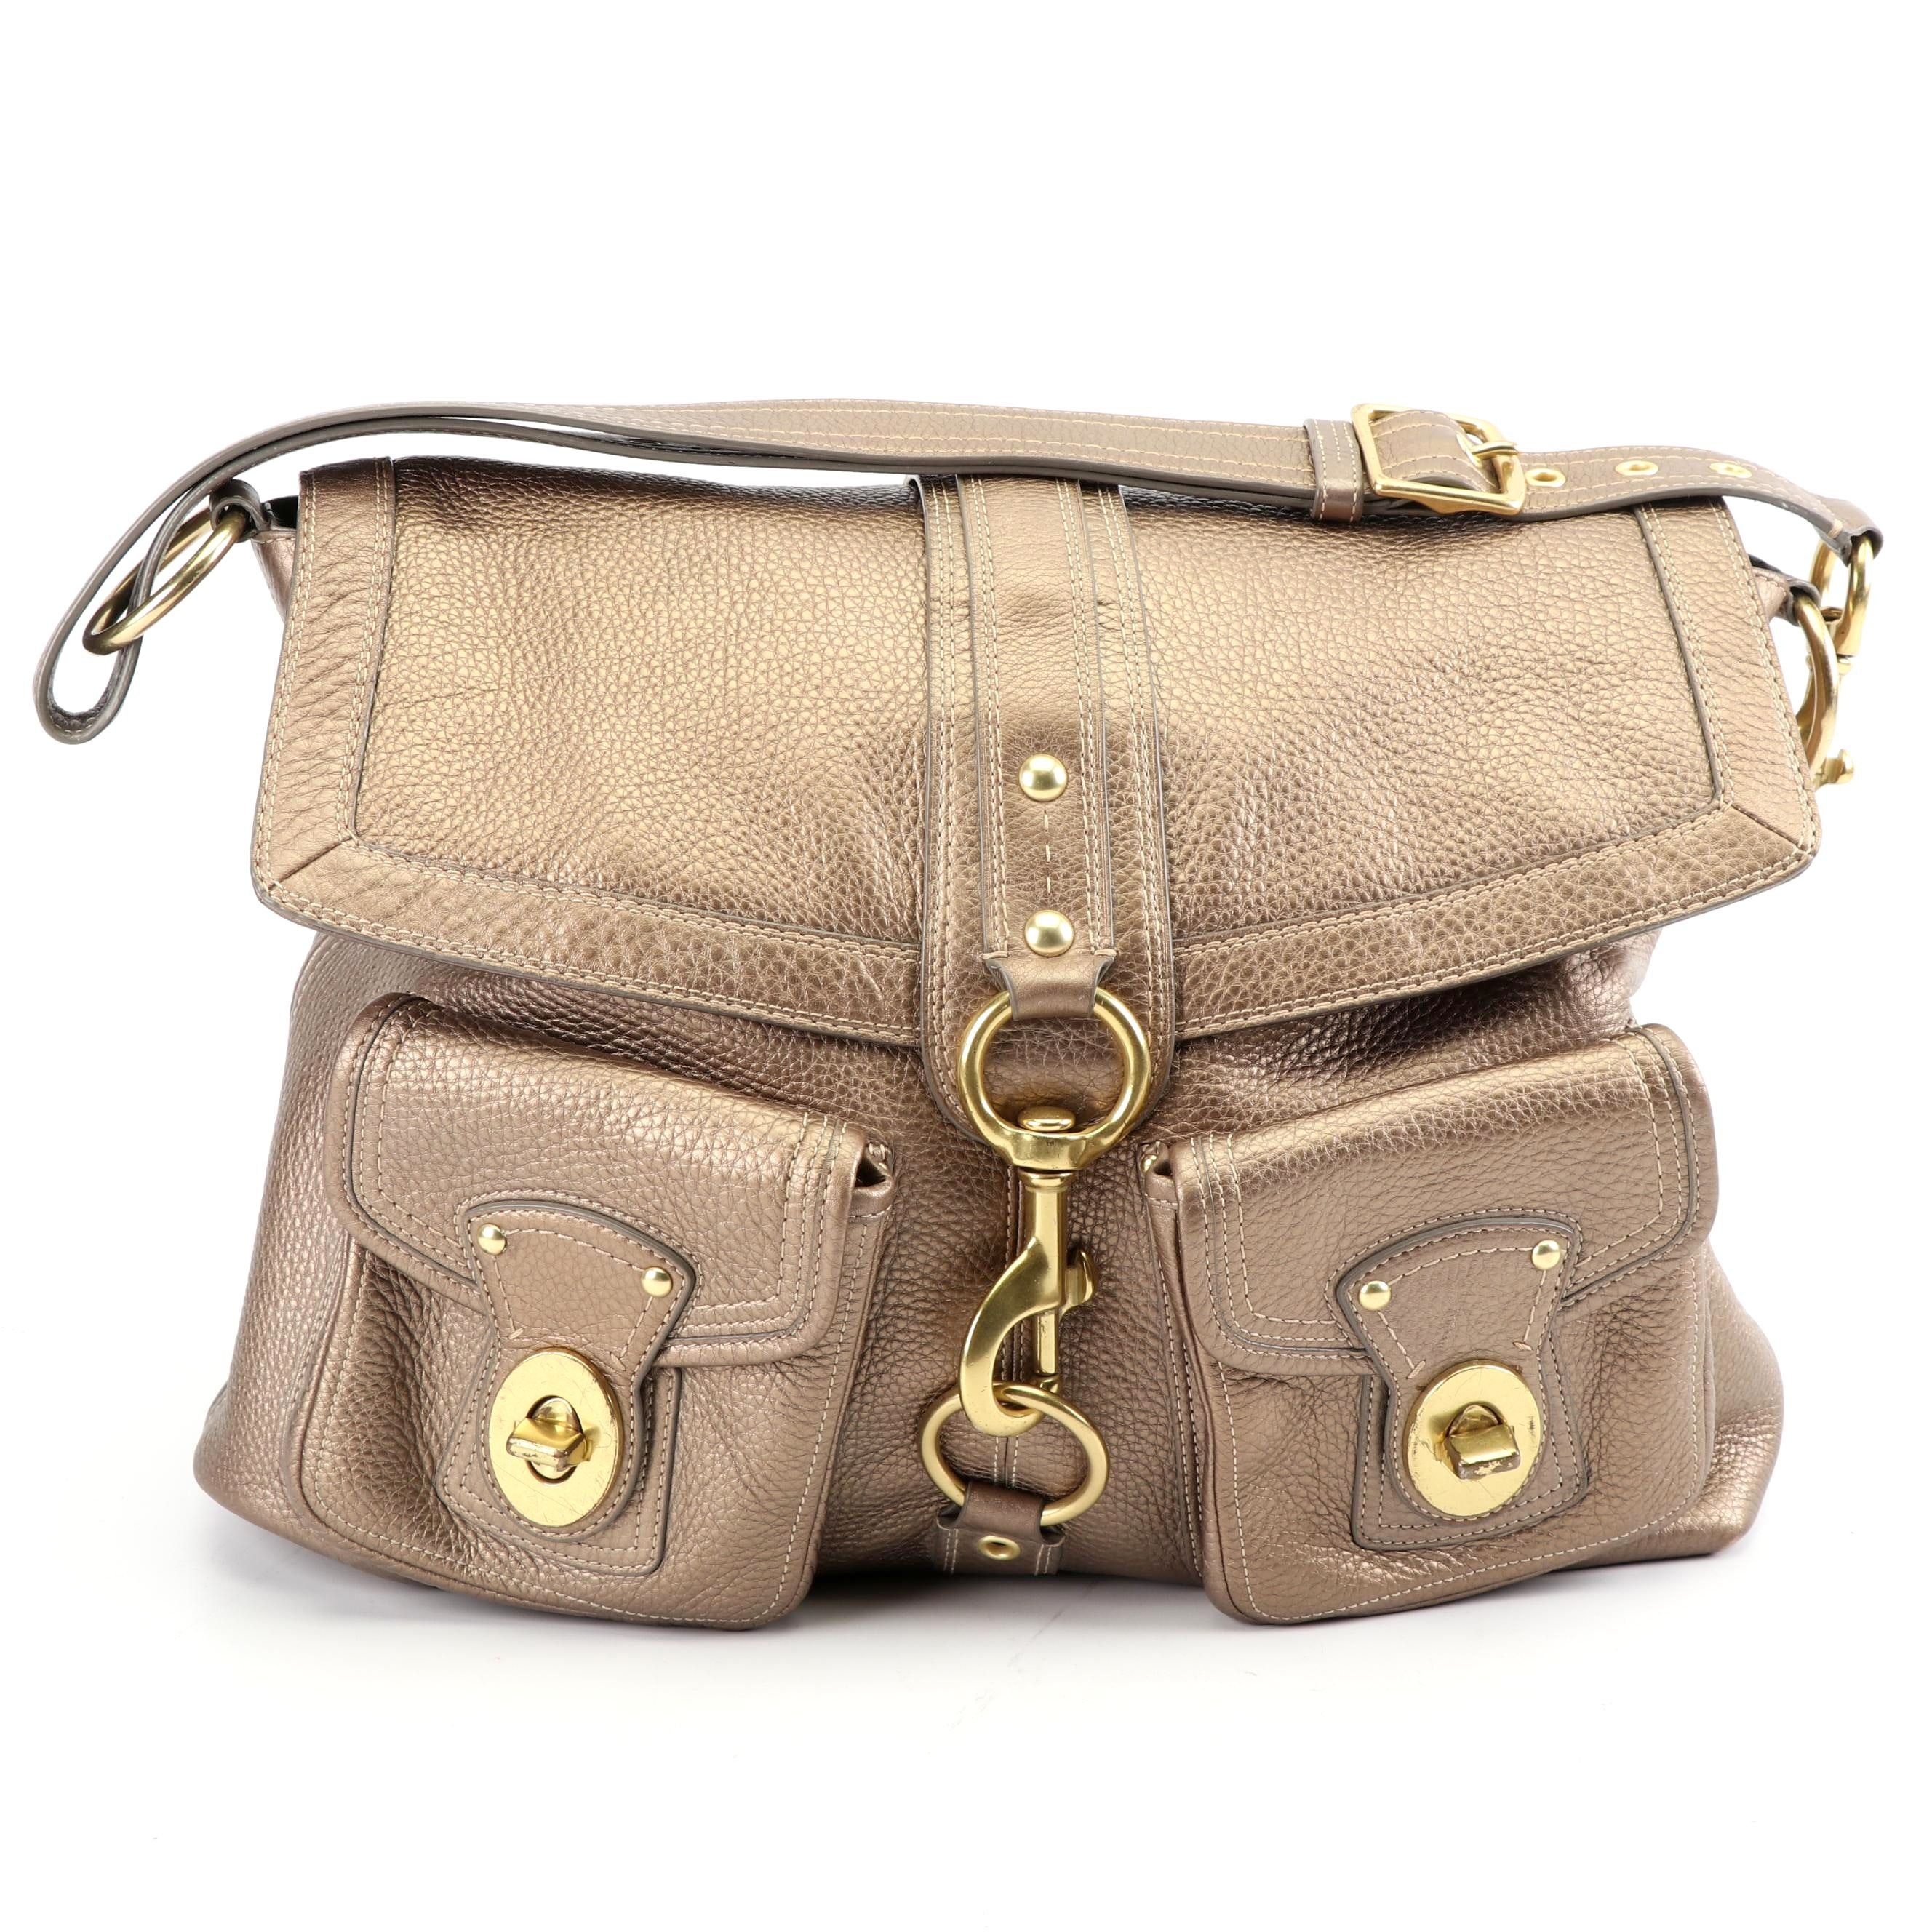 Coach Gold Tone Pebbled Leather Shoulder Bag